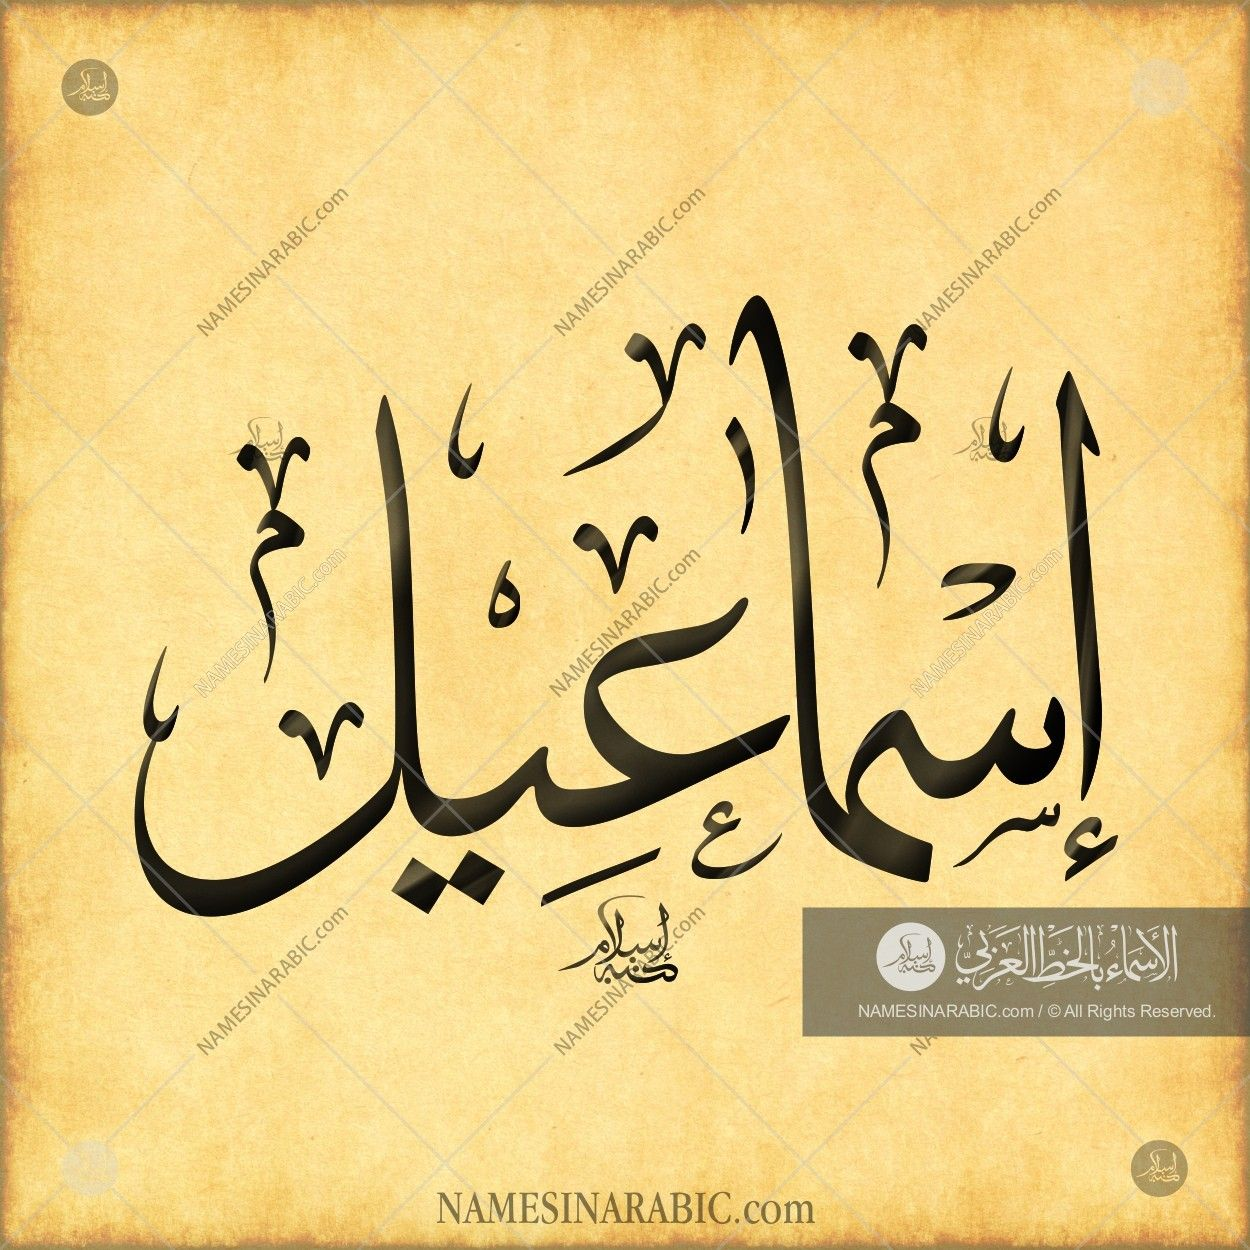 Ismail اسماعيل Names In Arabic Calligraphy Name 3821 Calligraphy Name Urdu Calligraphy Name Design Art